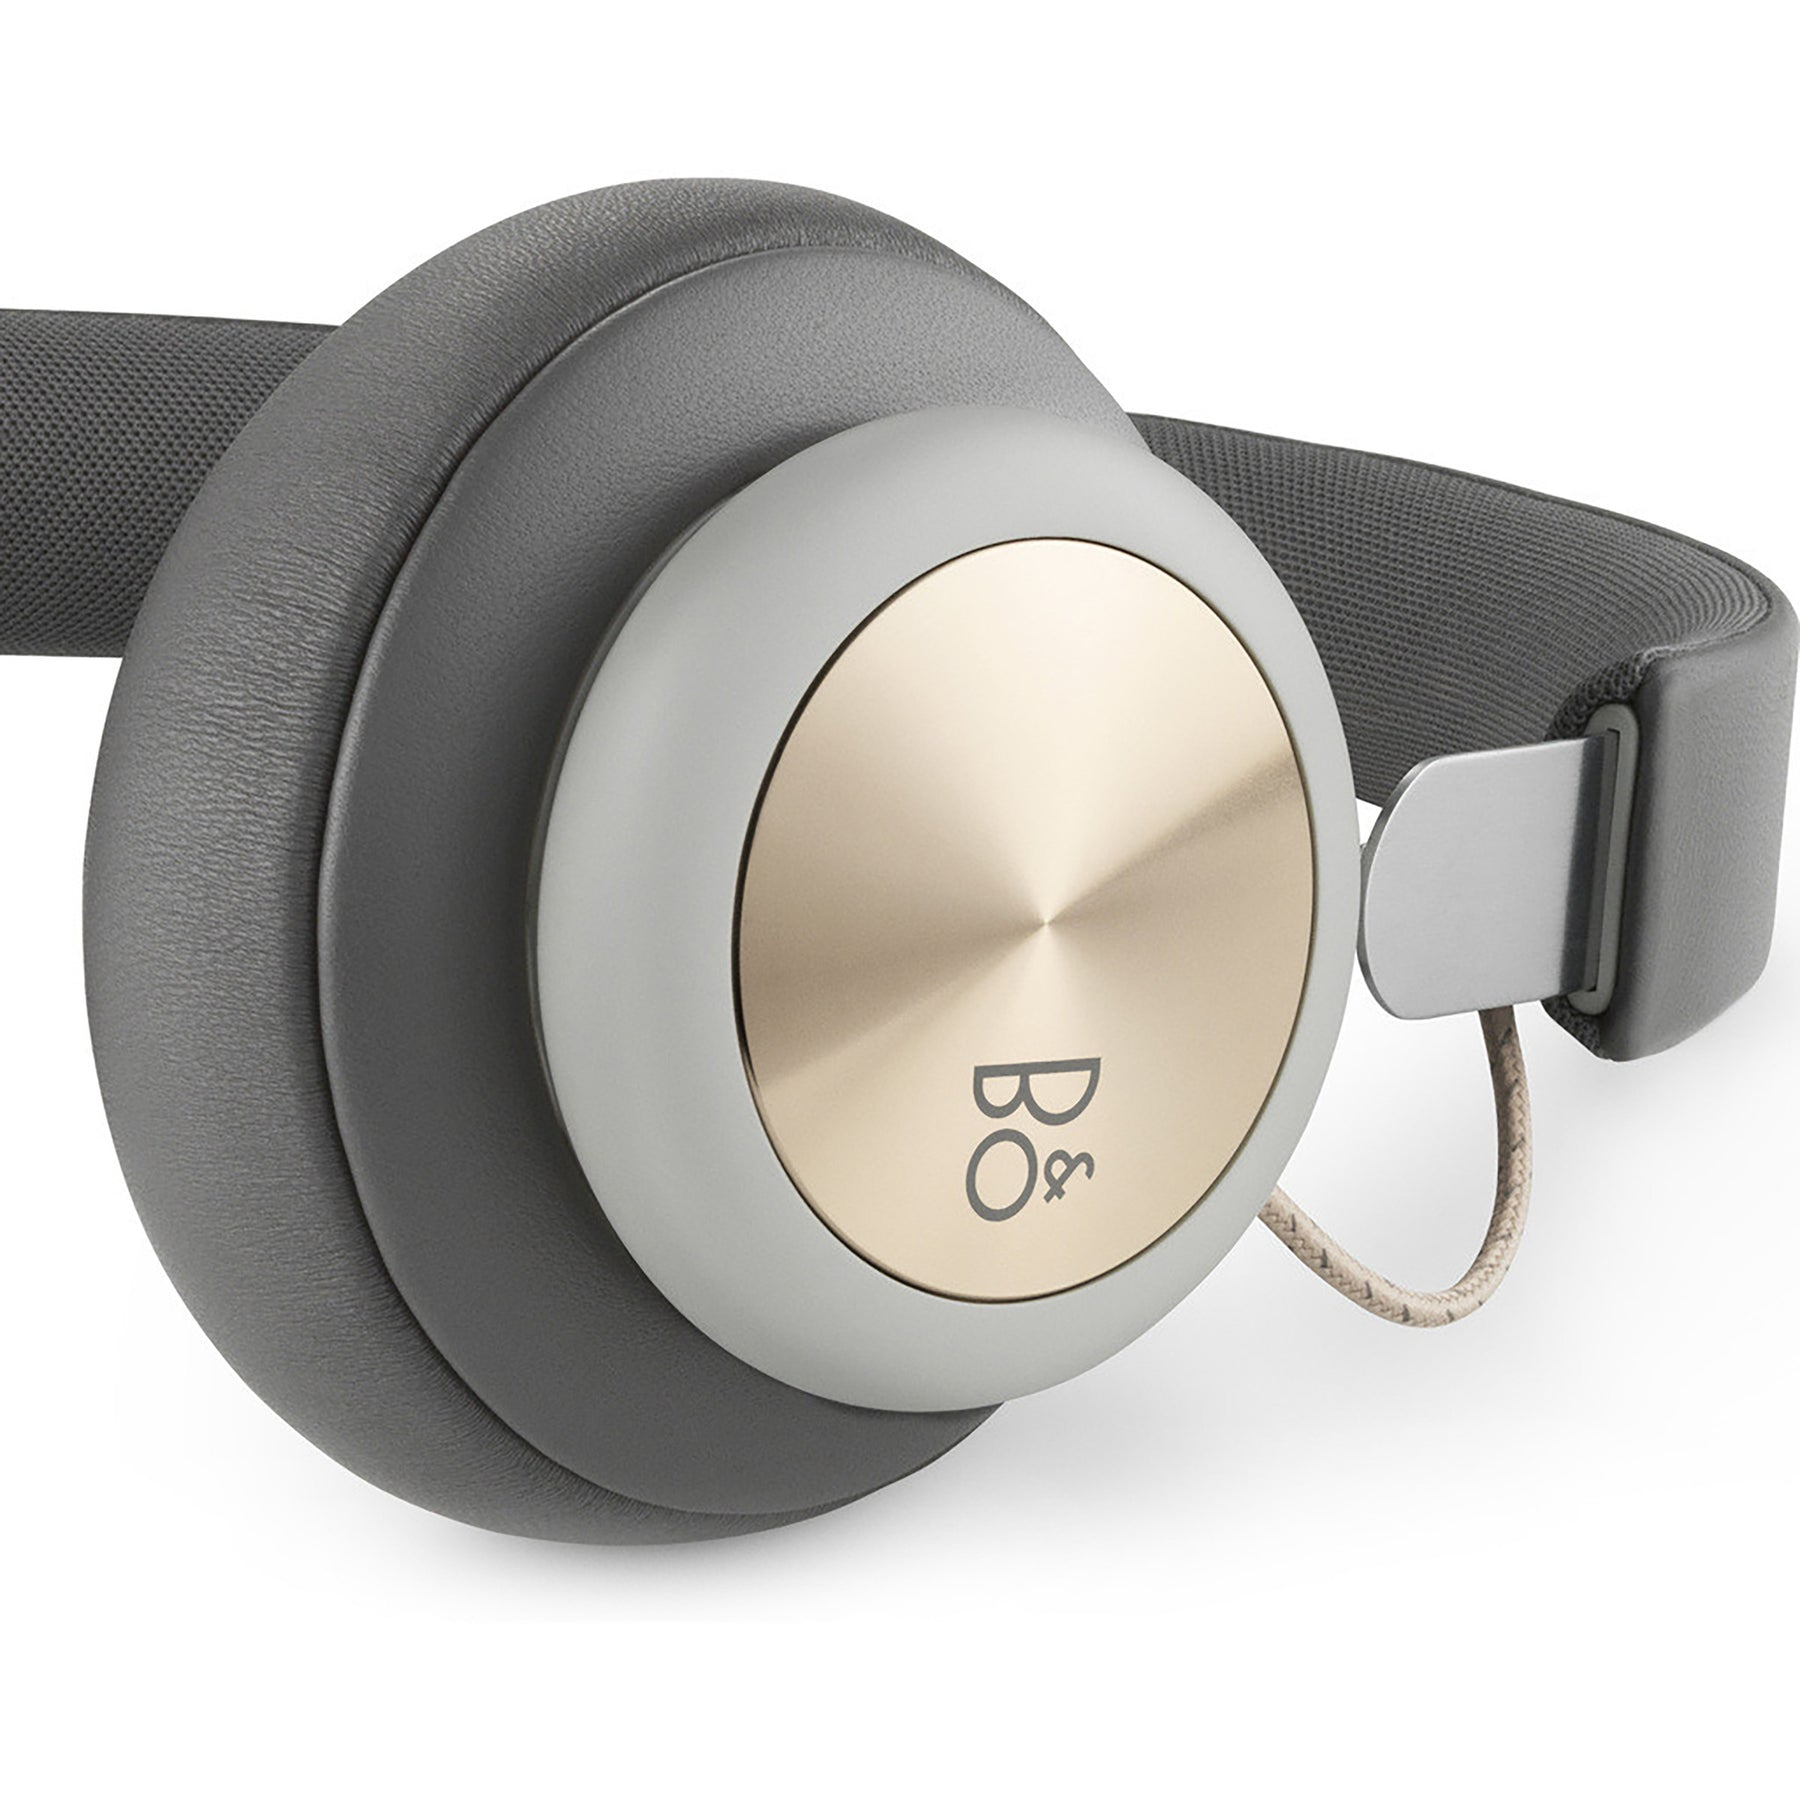 Bo Play Beoplay H4 Wireless Over Ear Headphones Charcoal Bang Ampamp Olufsen H3 Lightweight Earphone Silver